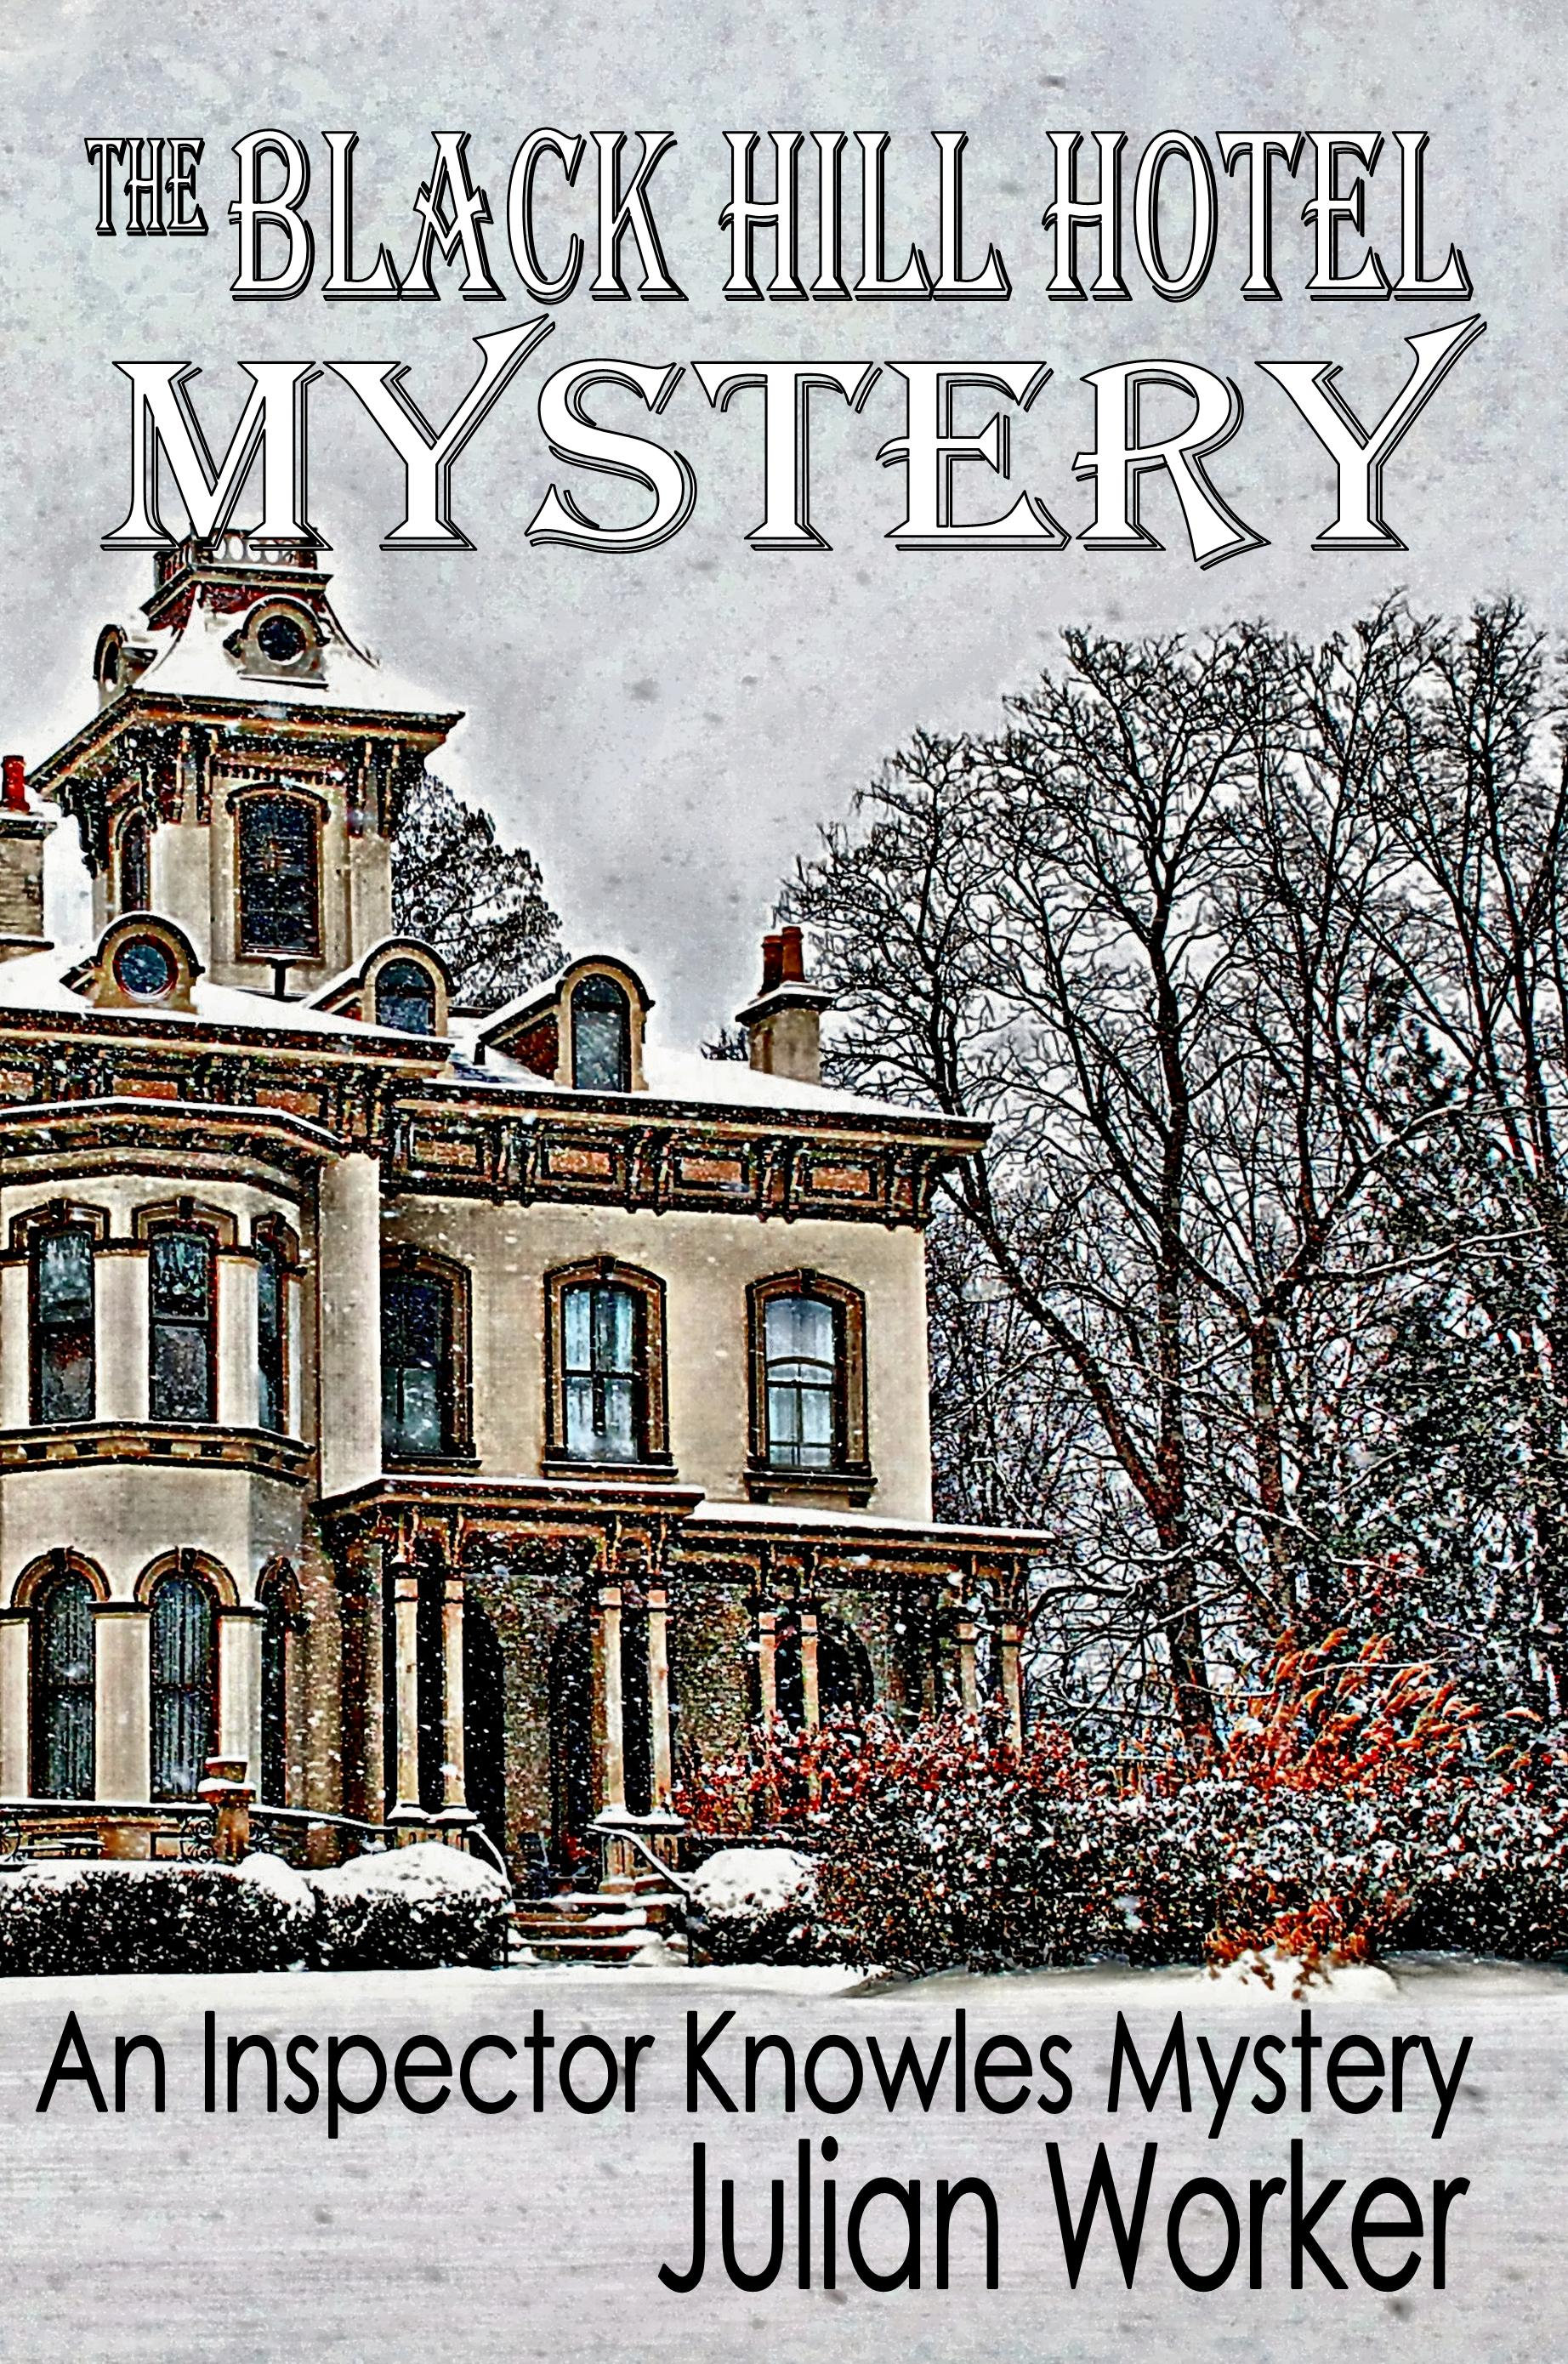 The Black Hill Hotel Mystery – 66